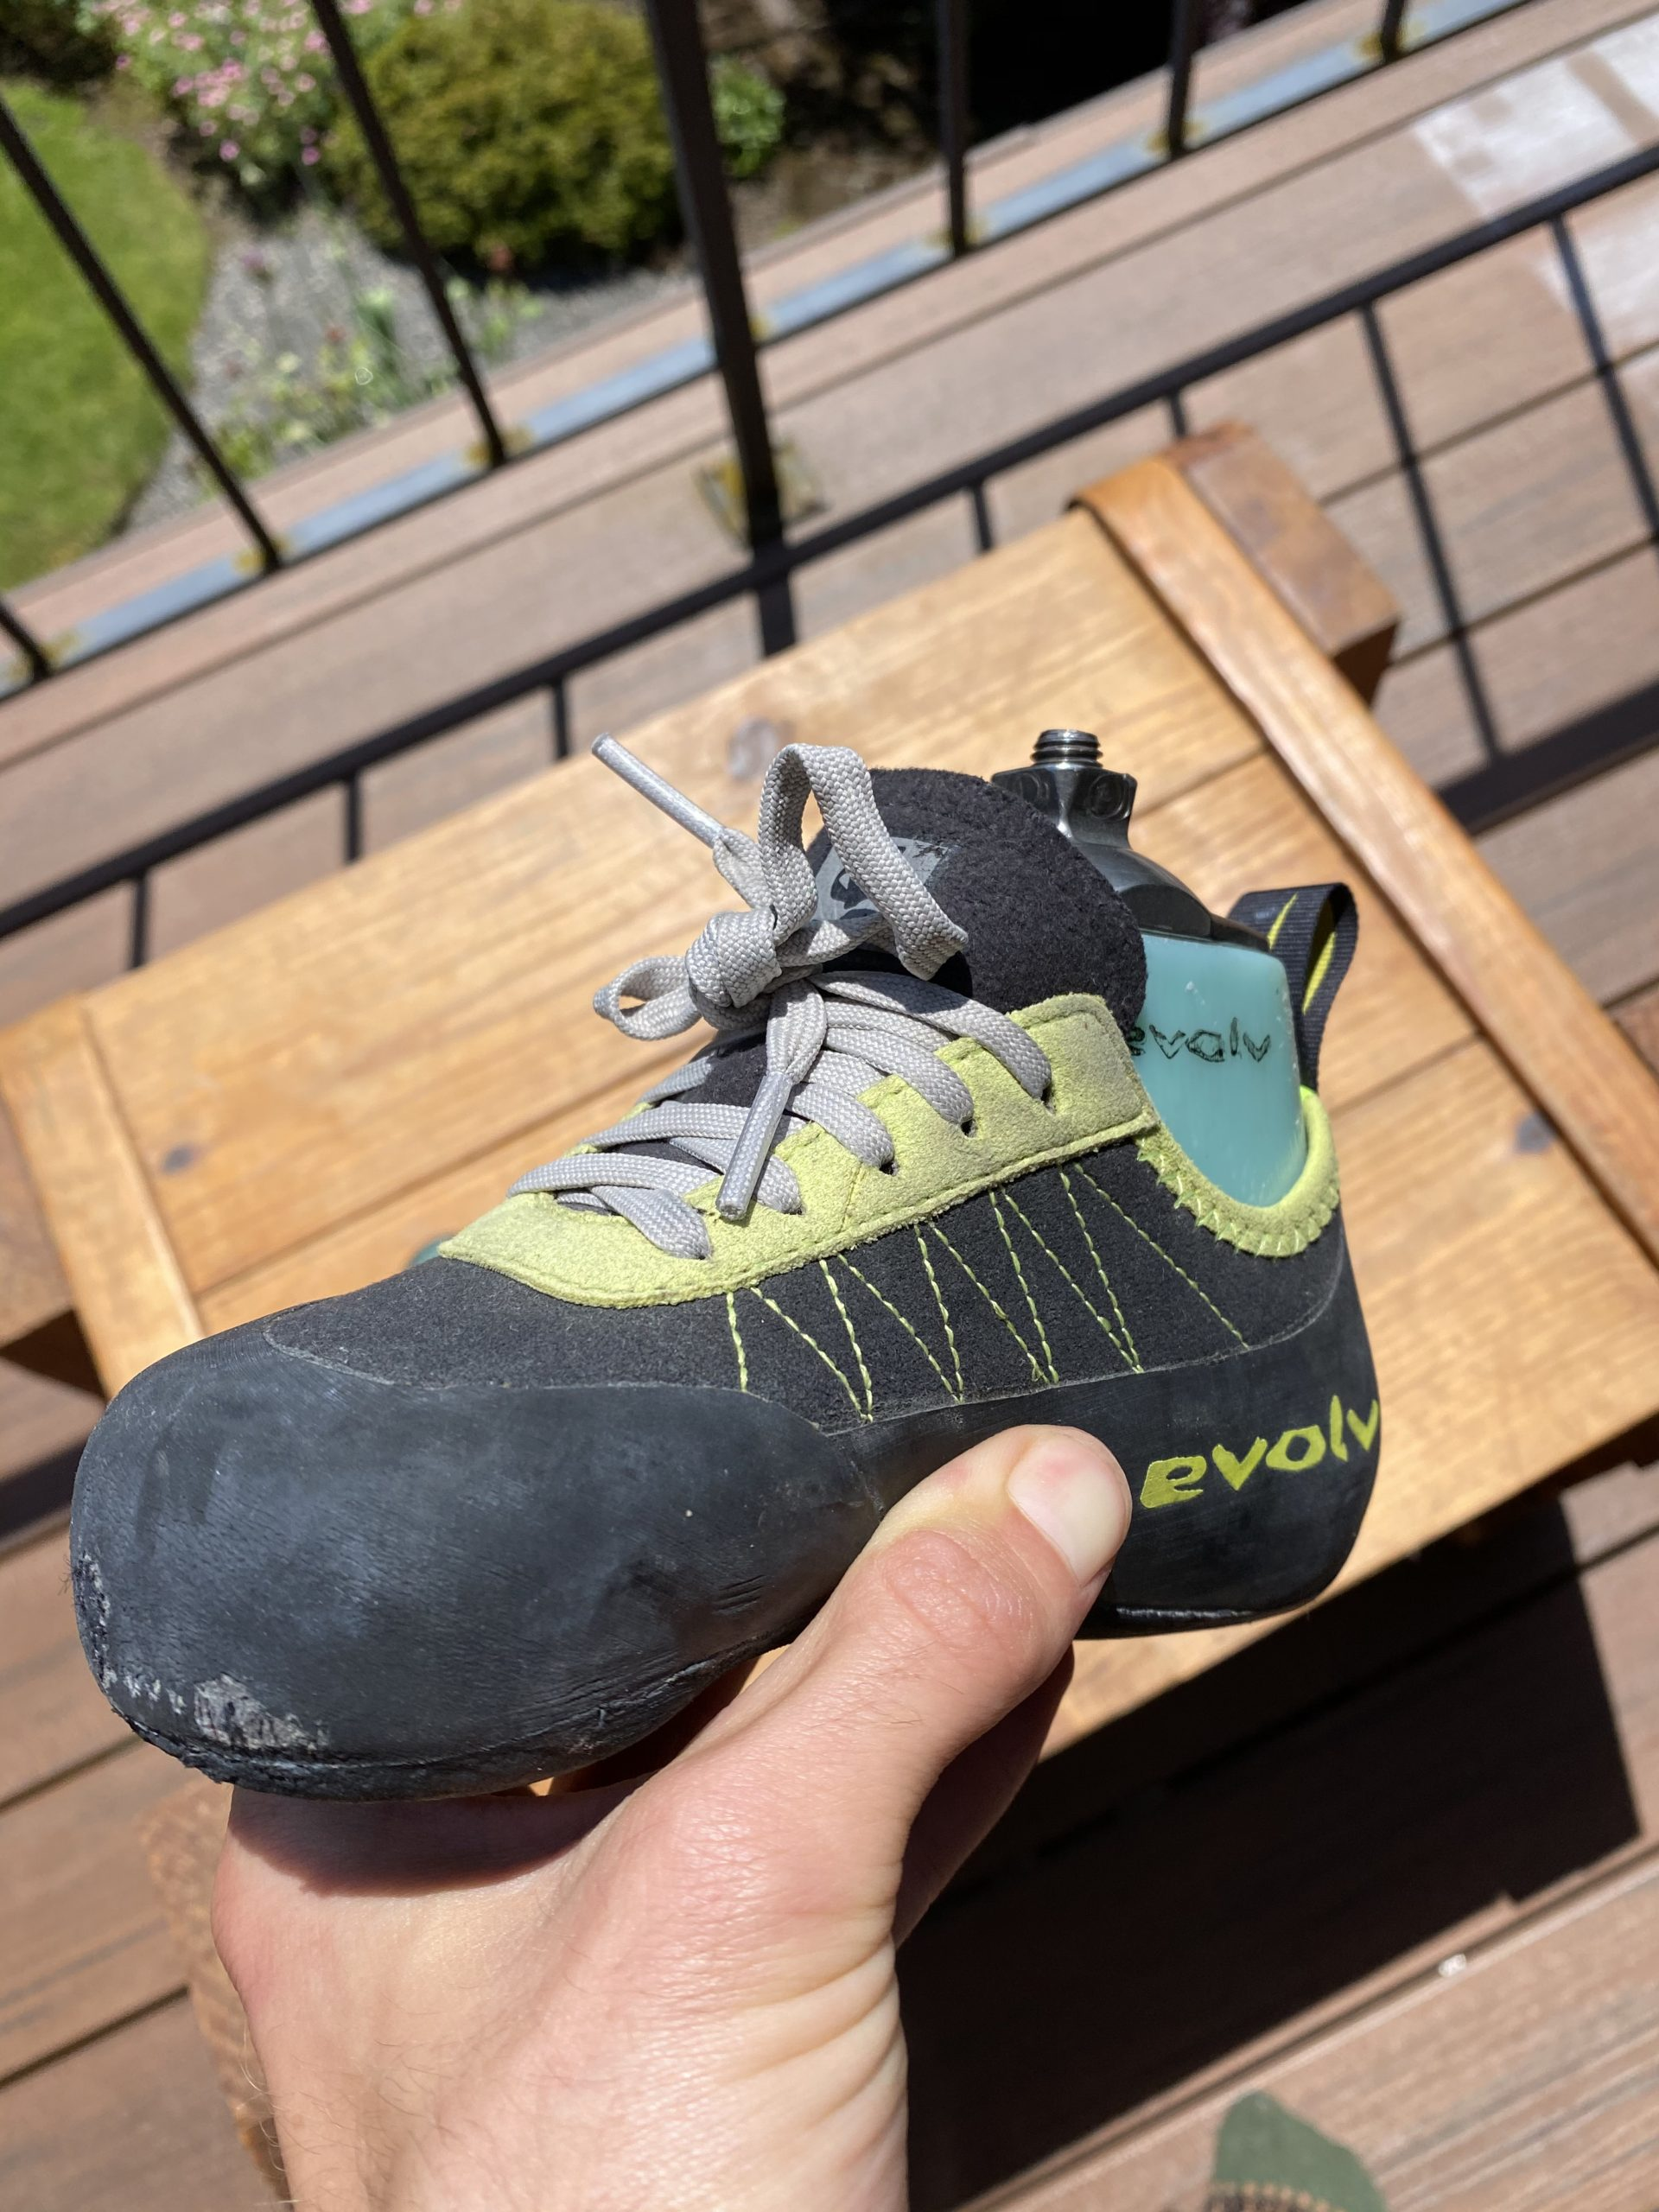 evolv adaptive climbing foot with shoe